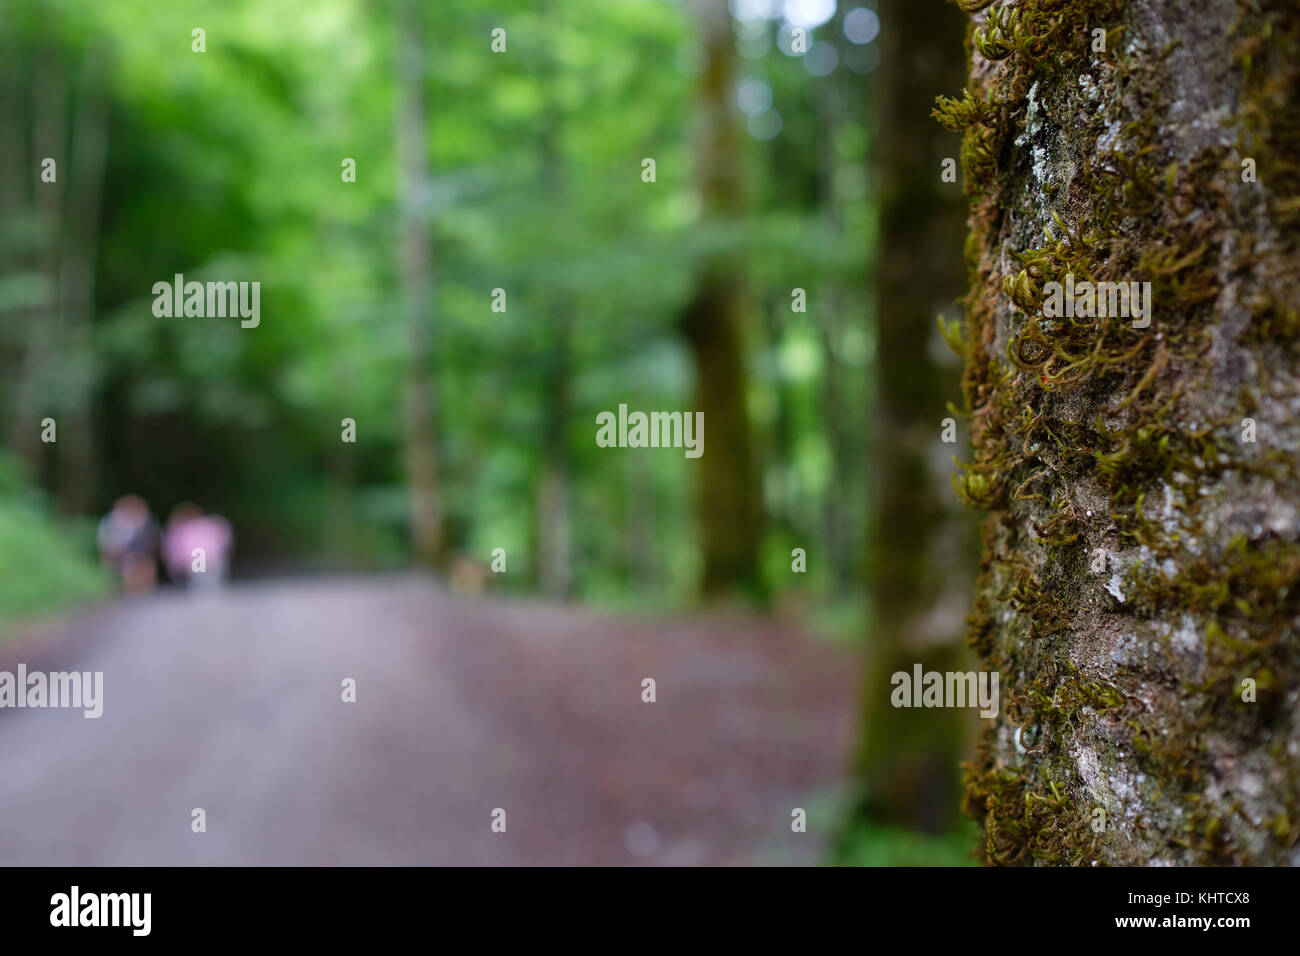 Tree with moos at a hiking trail with blurred hikers in a green forest - Stock Image